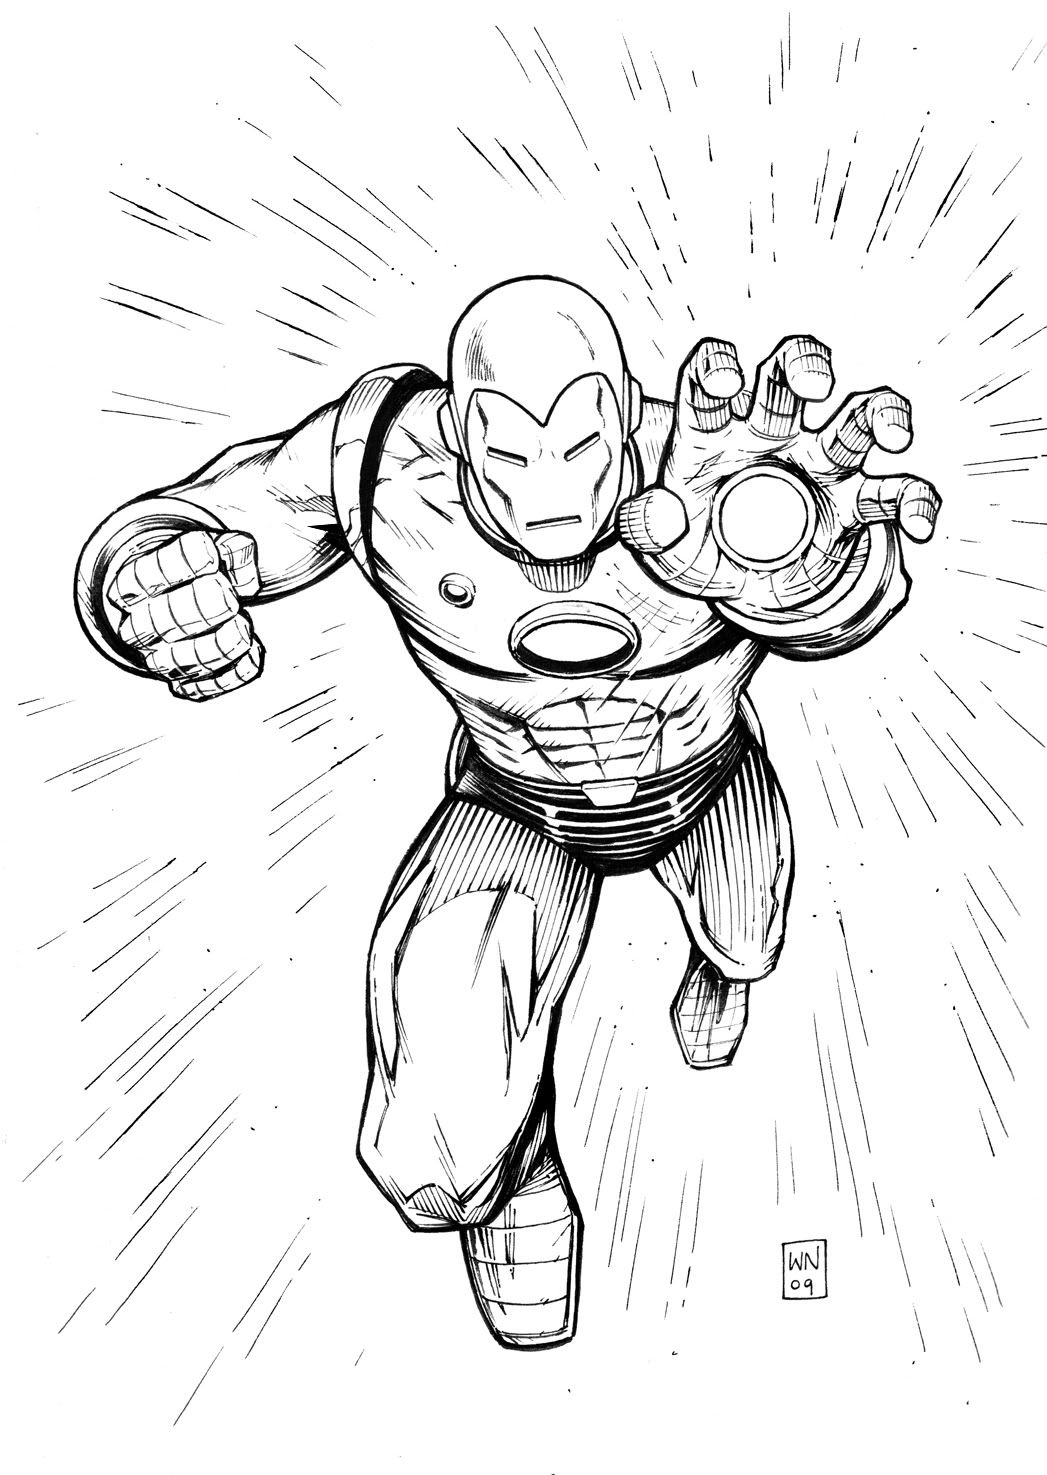 ironman images to color free printable ironman coloring pages coloring home images to color ironman